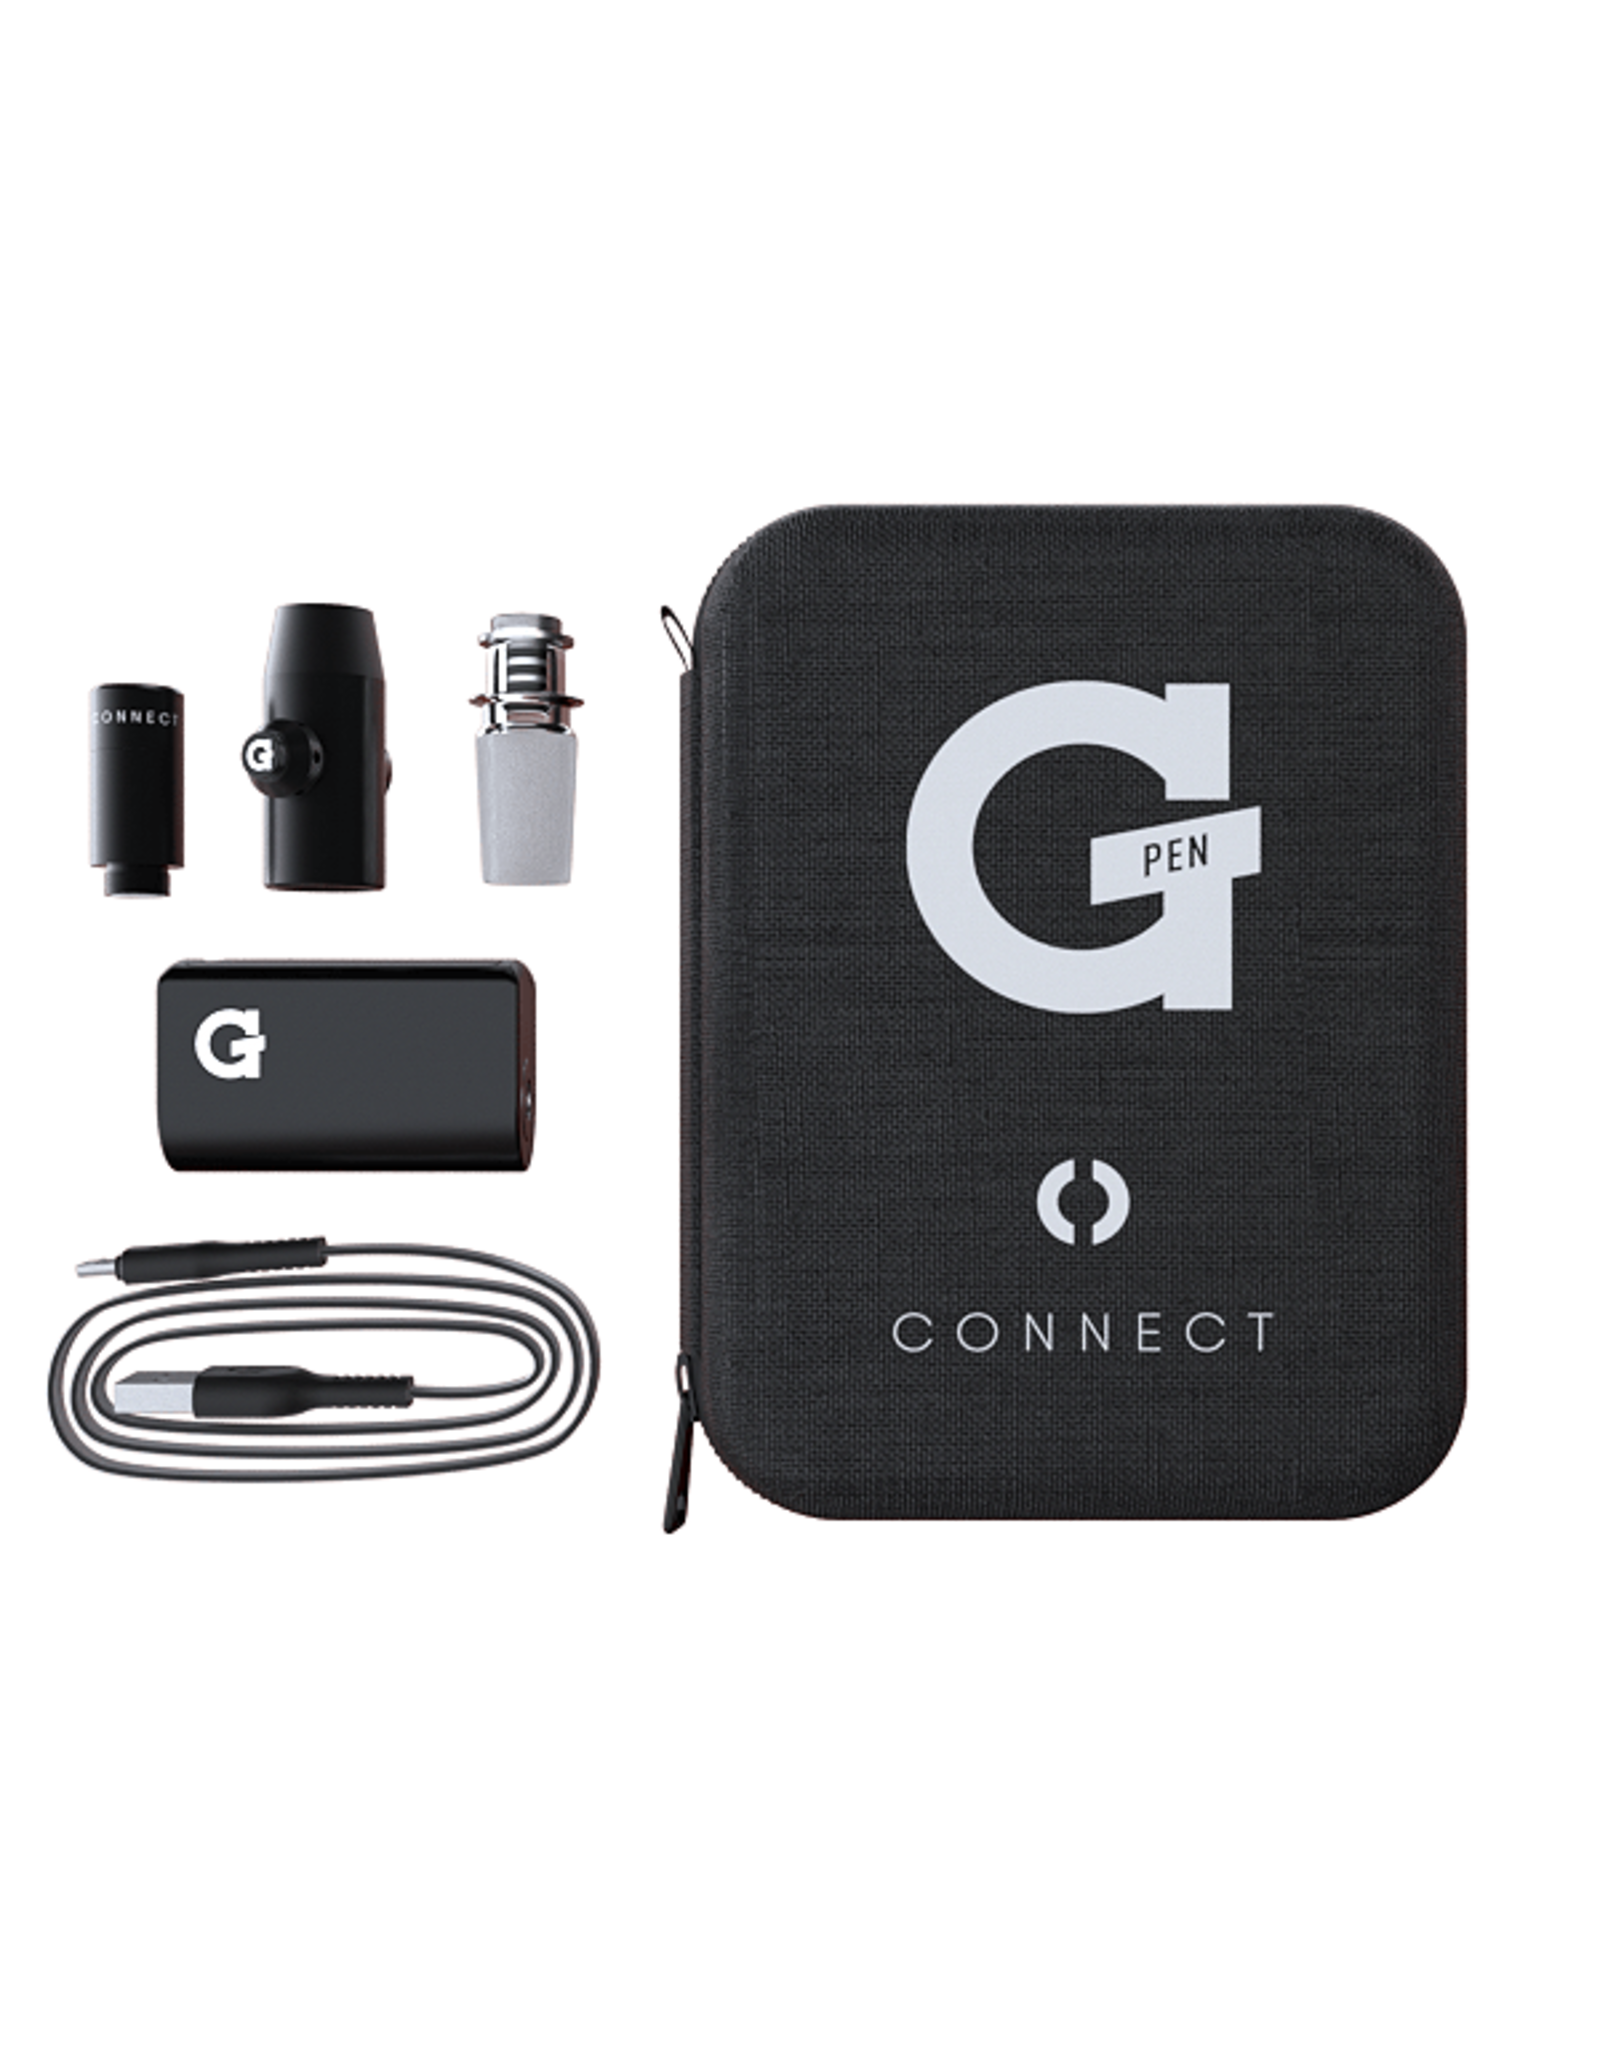 GPEN G Pen Connect Vaporizer